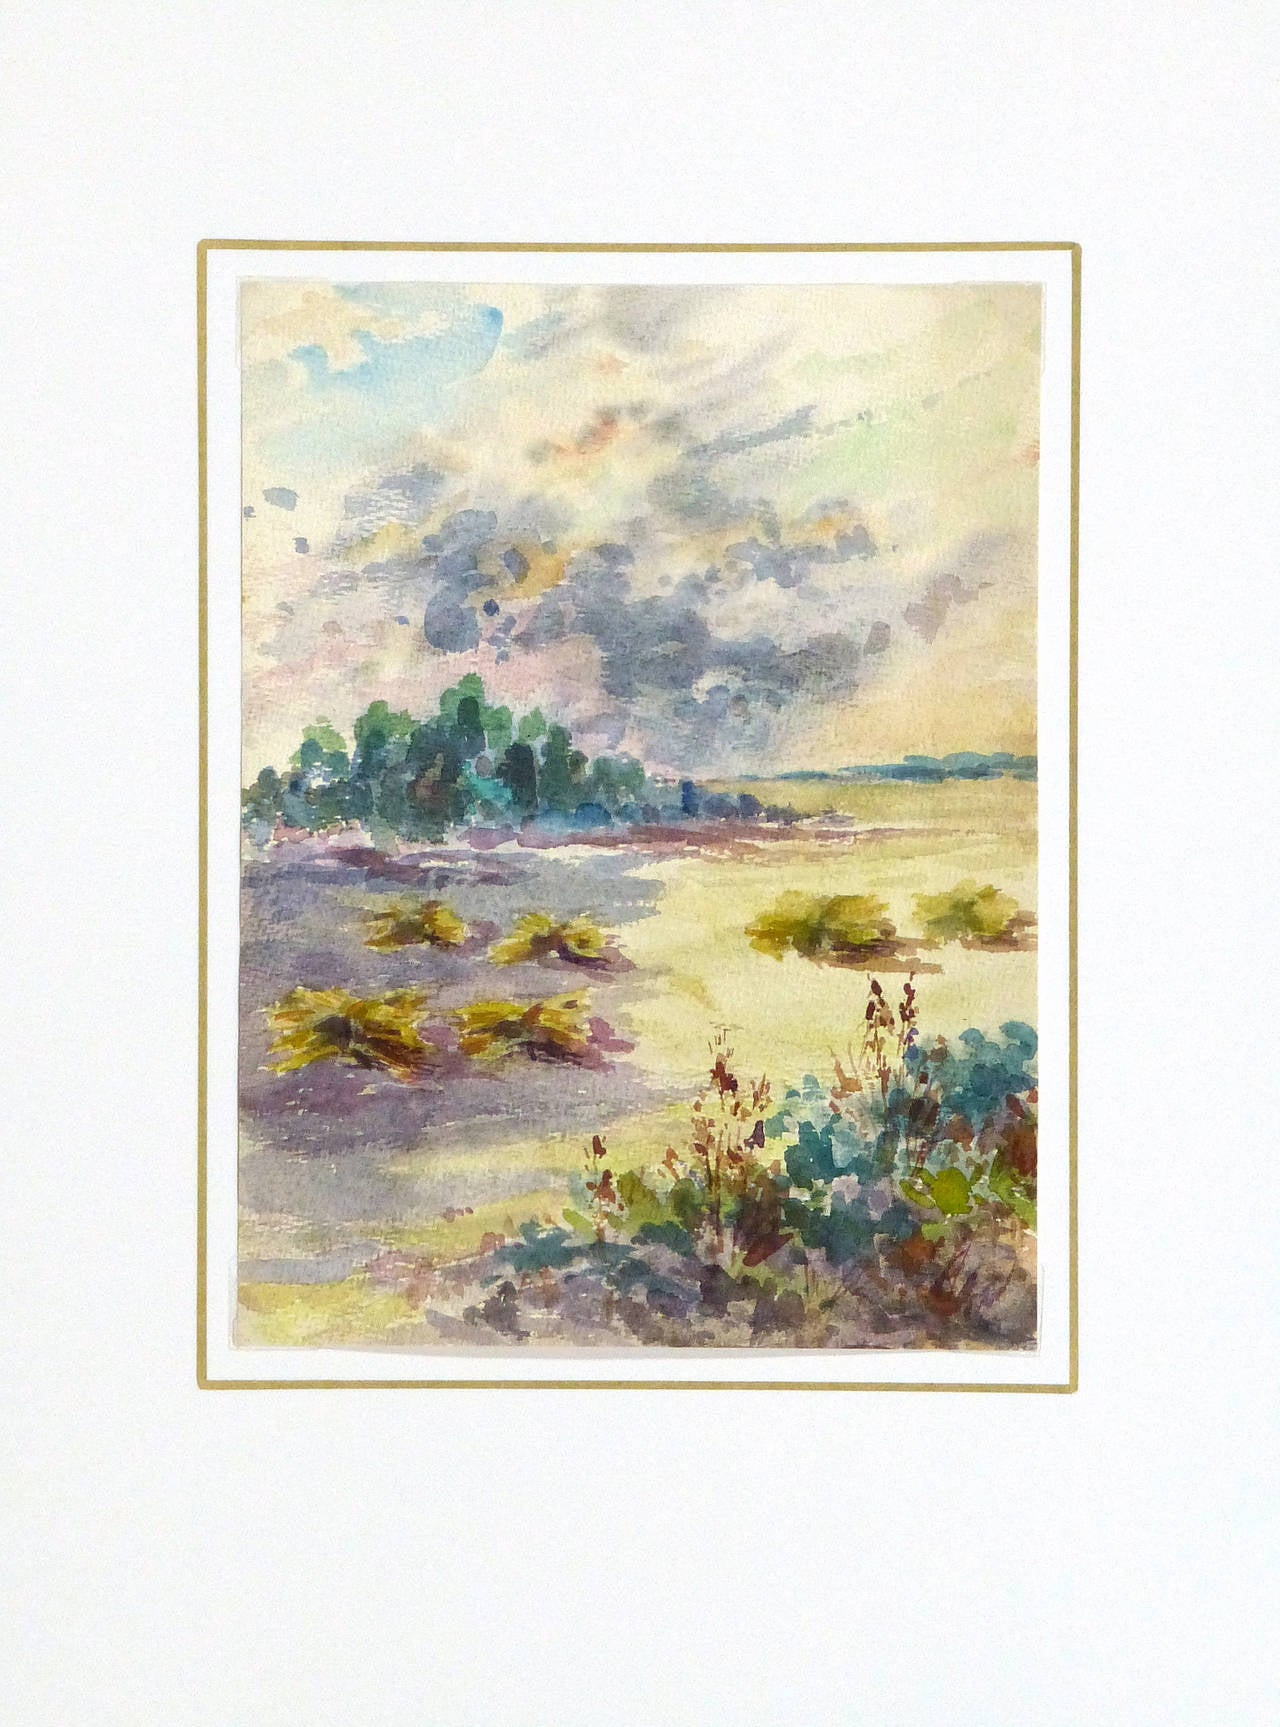 Delightful French watercolor landscape with a sweeping view of a farmer's field by artist Roger Tochon, circa 1930.   Original vintage one-of-a-kind artwork on paper displayed on a white mat with a gold border. Mat fits a standard-size frame.